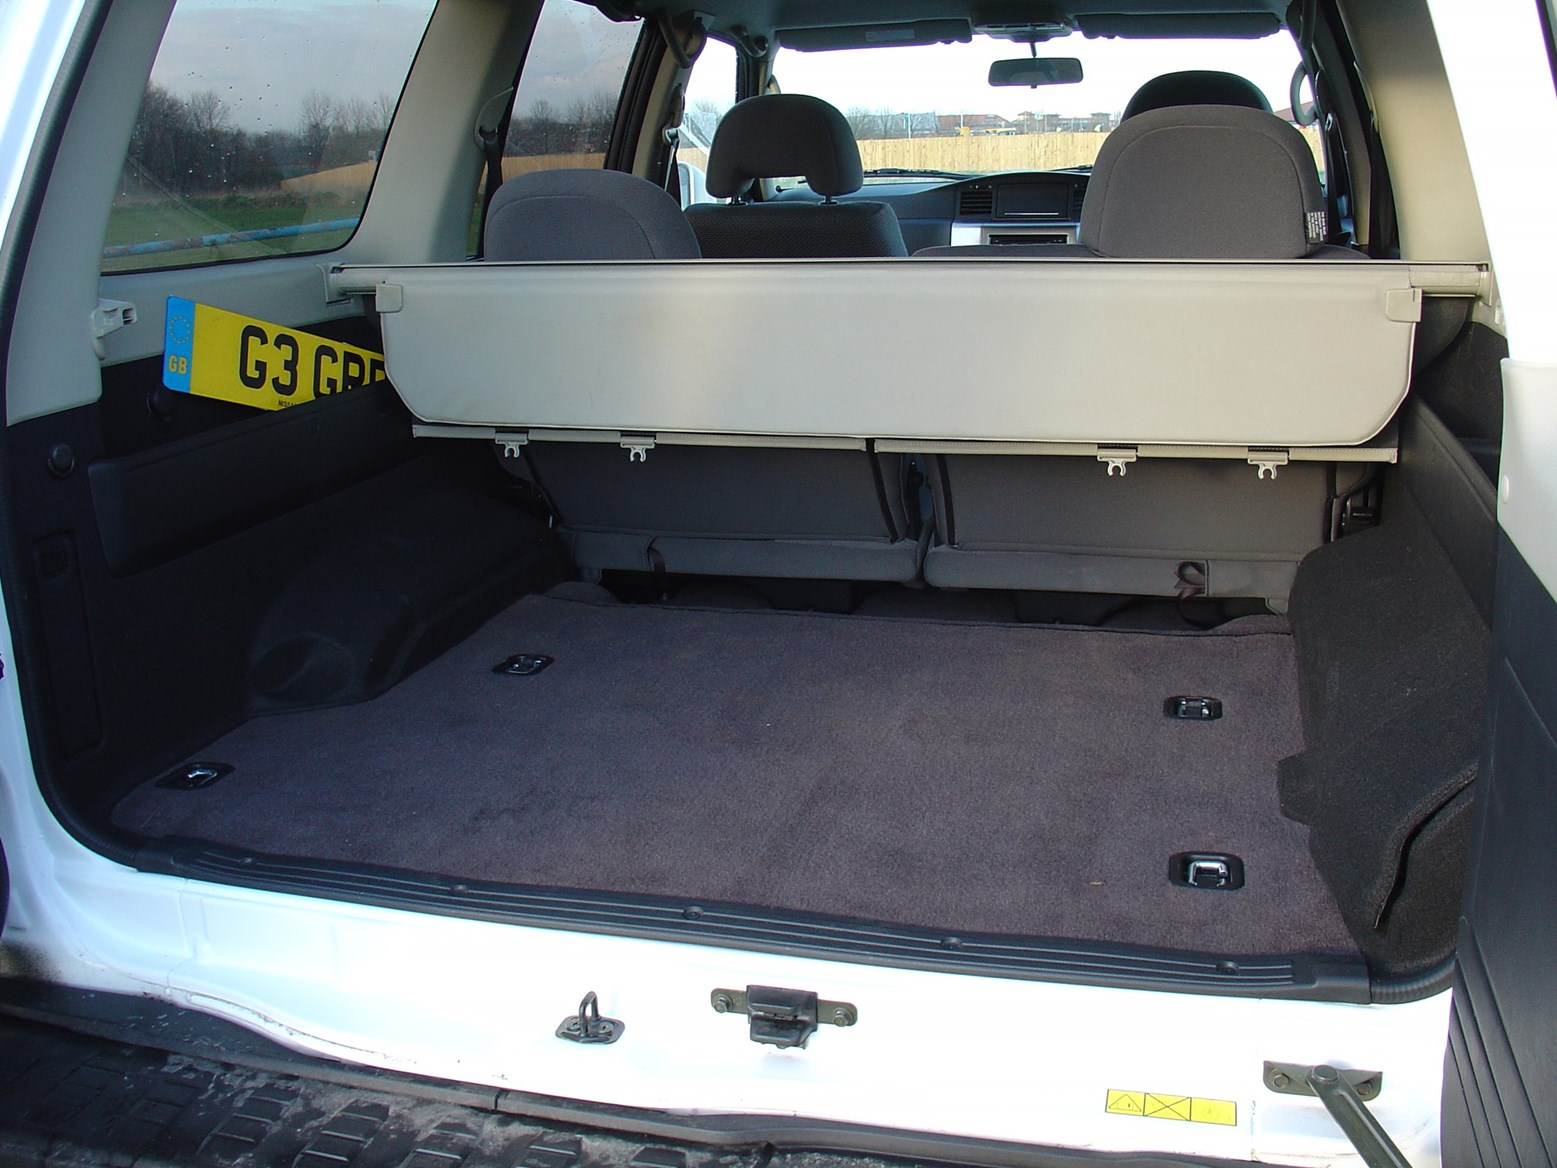 Used Nissan Patrol Station Wagon (1998 - 2009) Practicality | Parkers